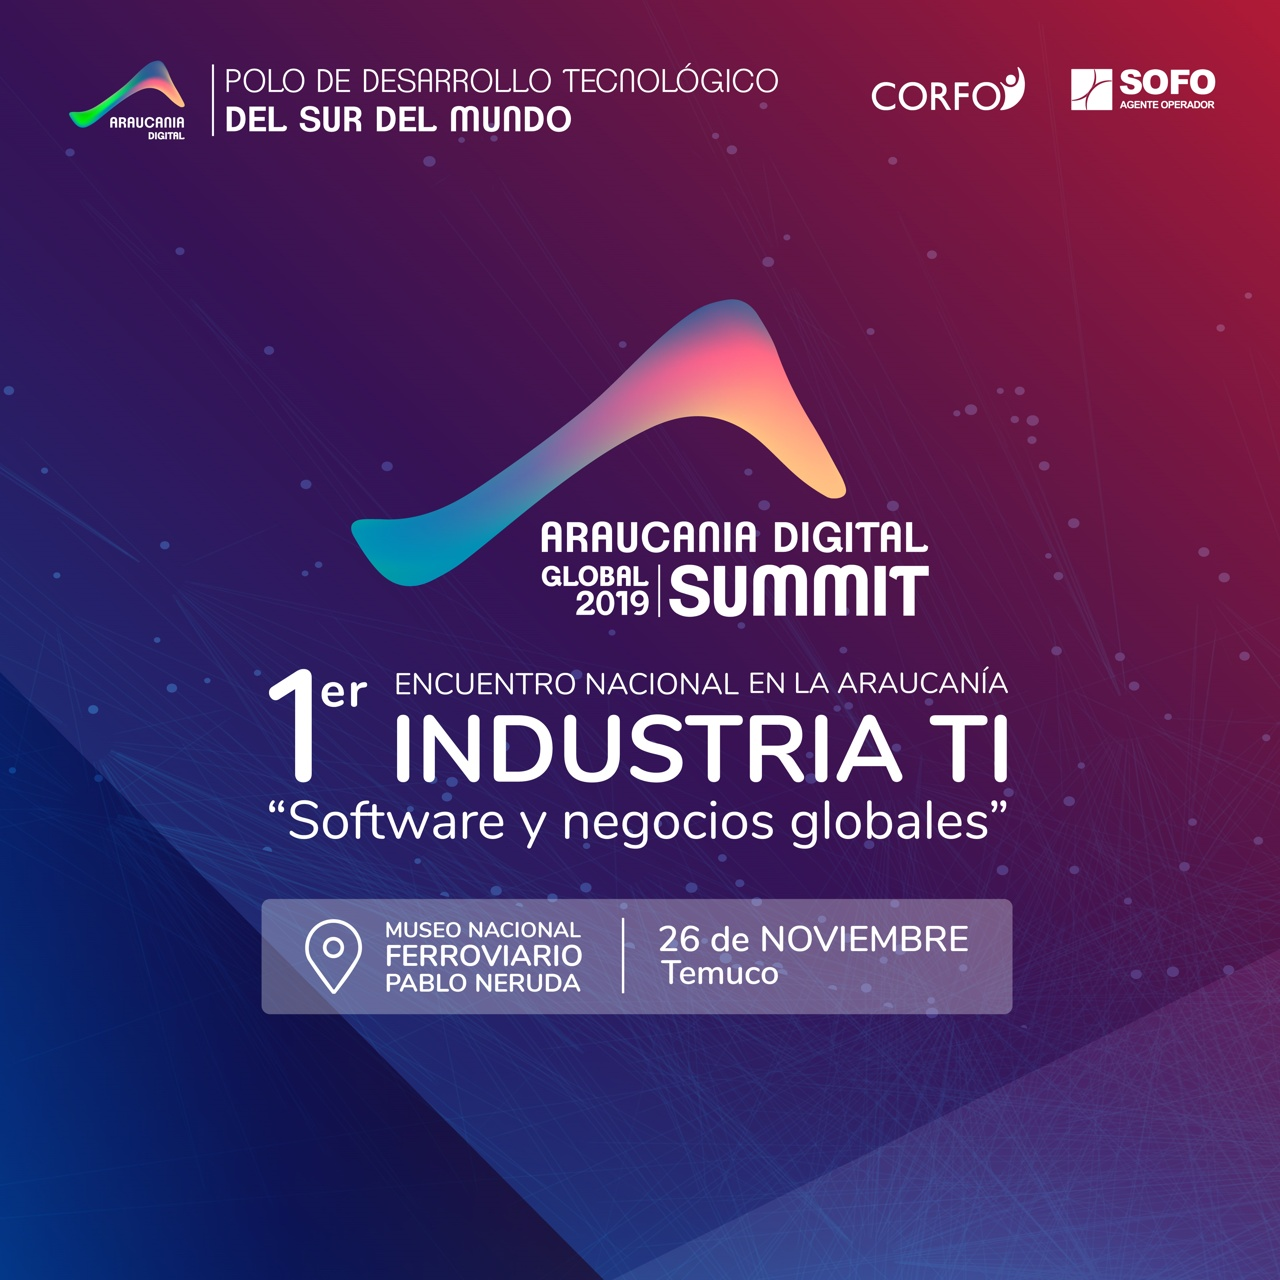 Araucanía Digital Global Summit 2019